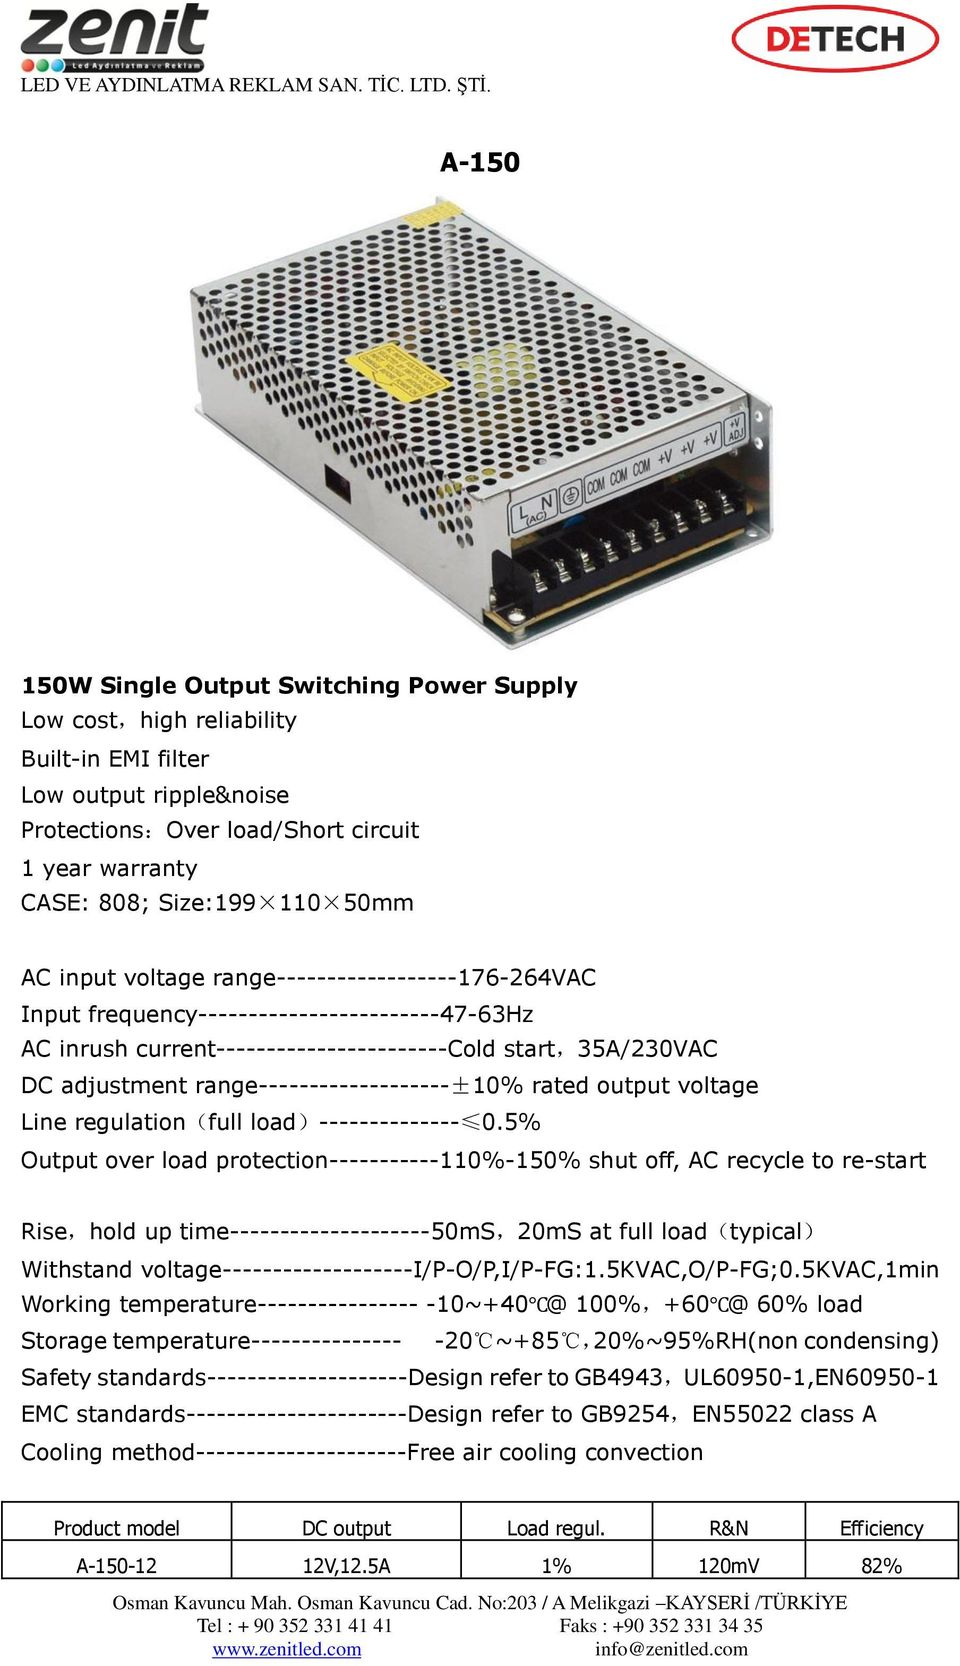 range-------------------±10% rated output voltage Line regulation(full load)-------------- 0.